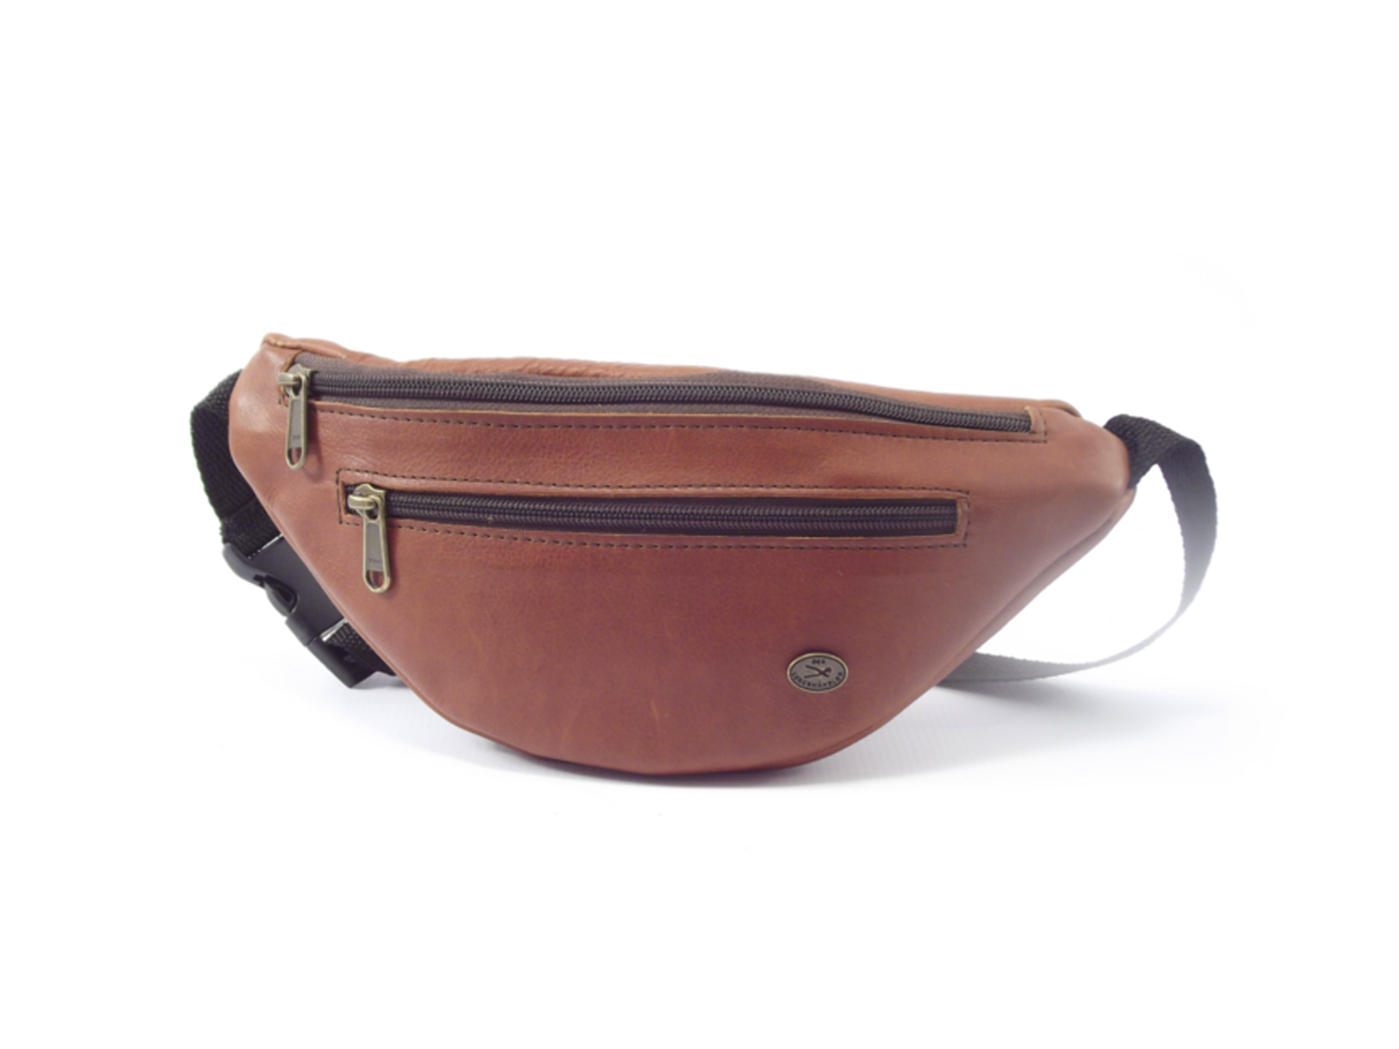 Moonbag One Hp7023 Leather Waist Bag By Der Lederhandler